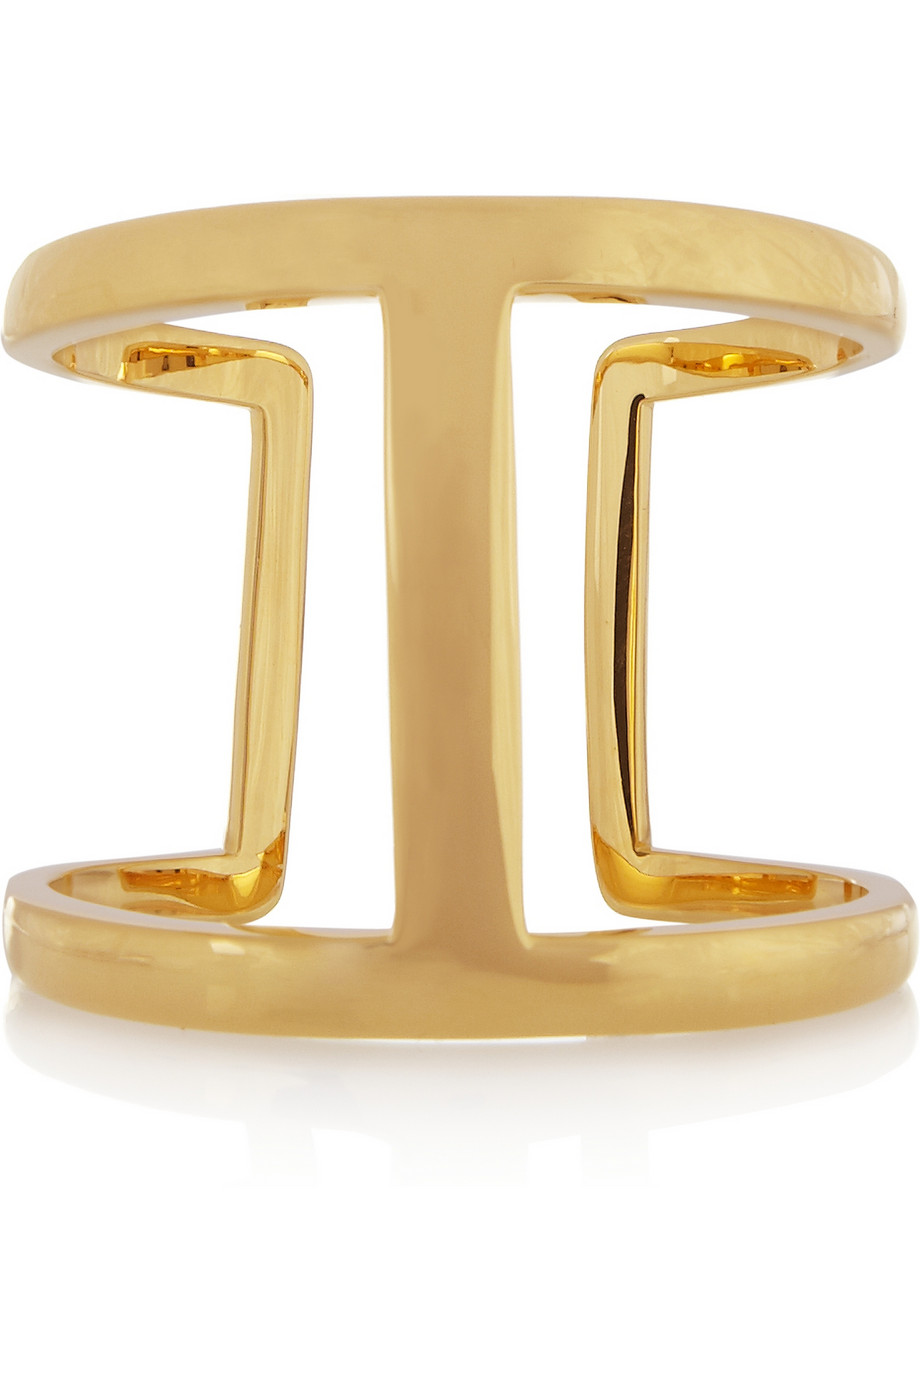 MAIYET  Gold Plated Cuff buy HERE